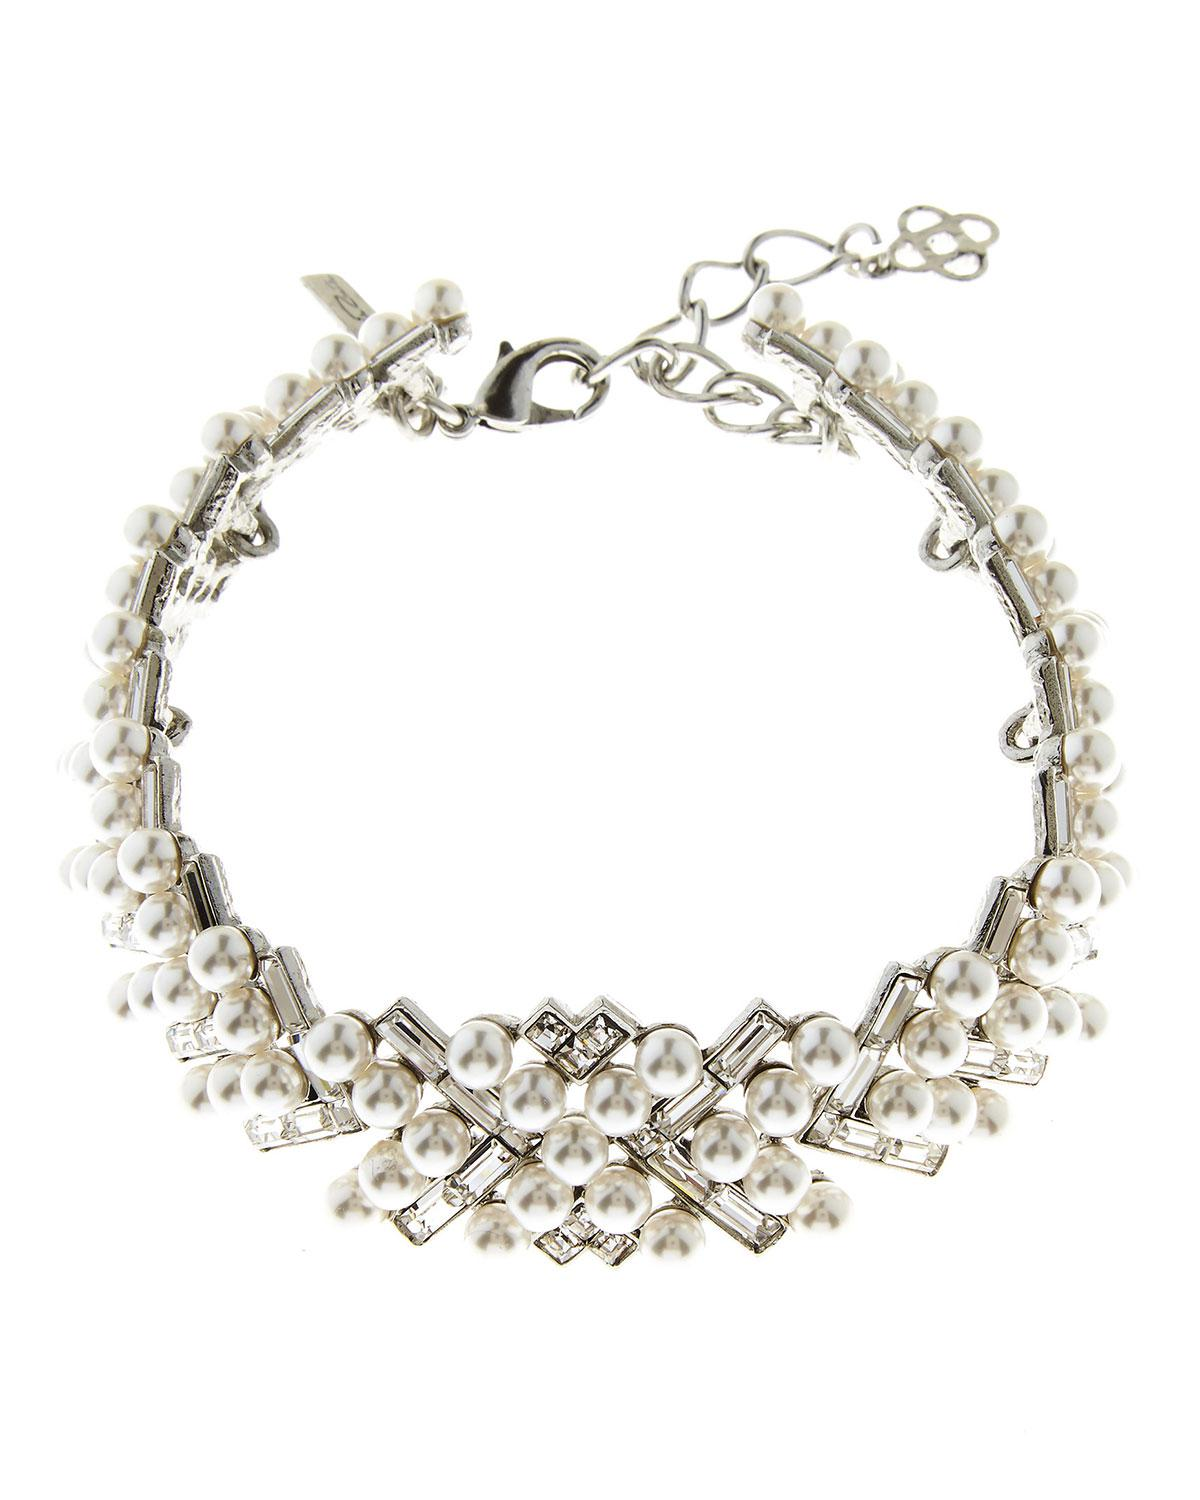 Oscar De La Renta Pearly Baguette Statement Necklace a5Ii0XVORQ